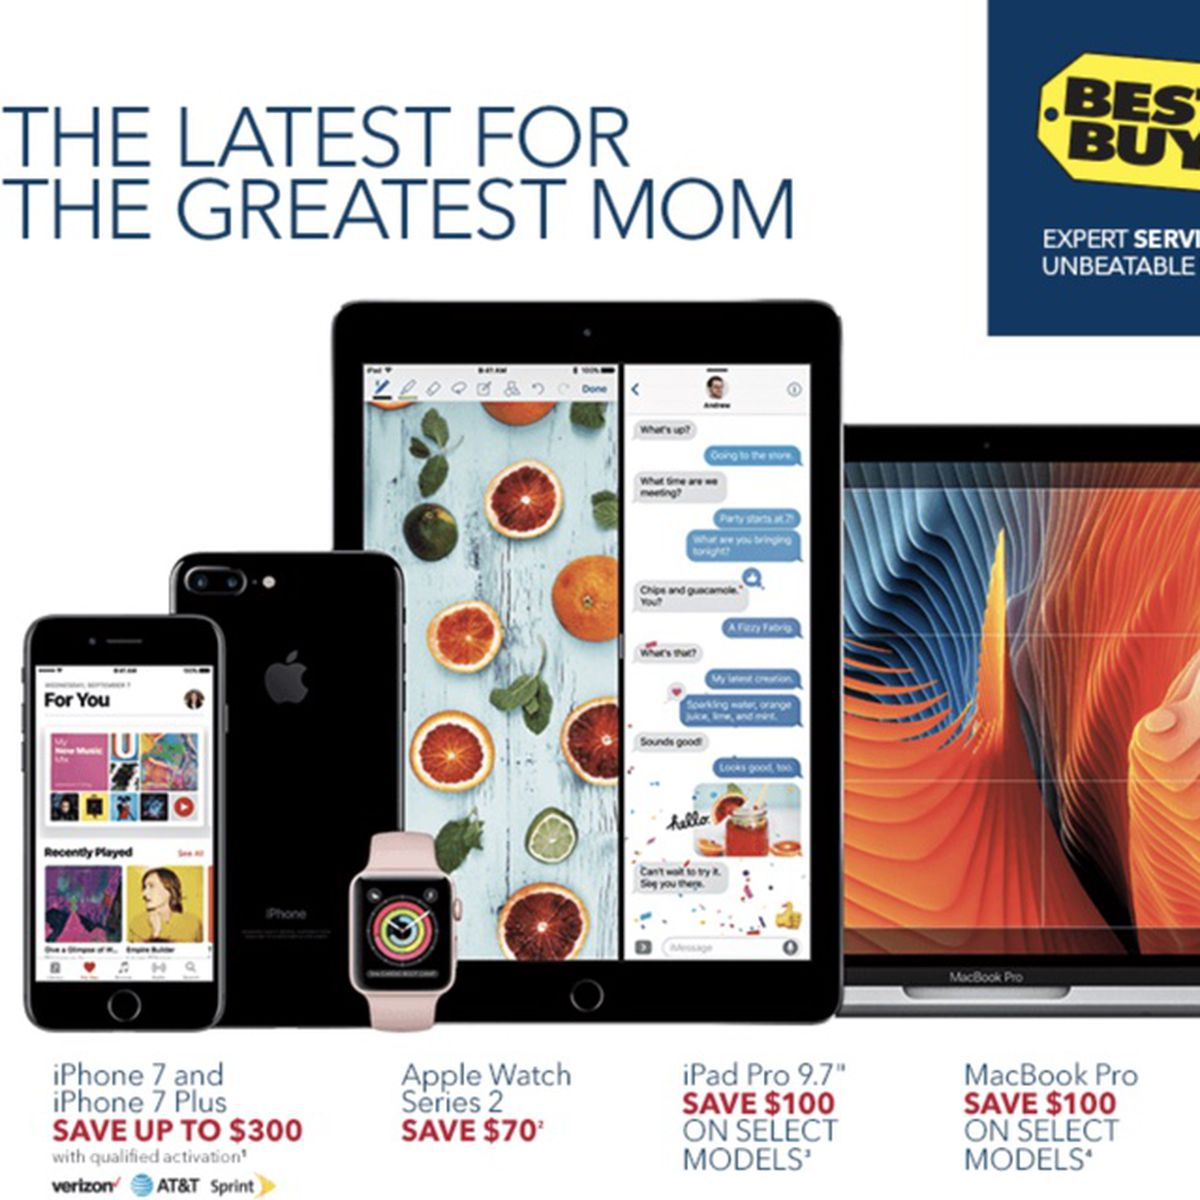 Best Buy Discounts Apple Watch Series 2 by $70, Drops iPad Pro Price by  $100 - MacRumors